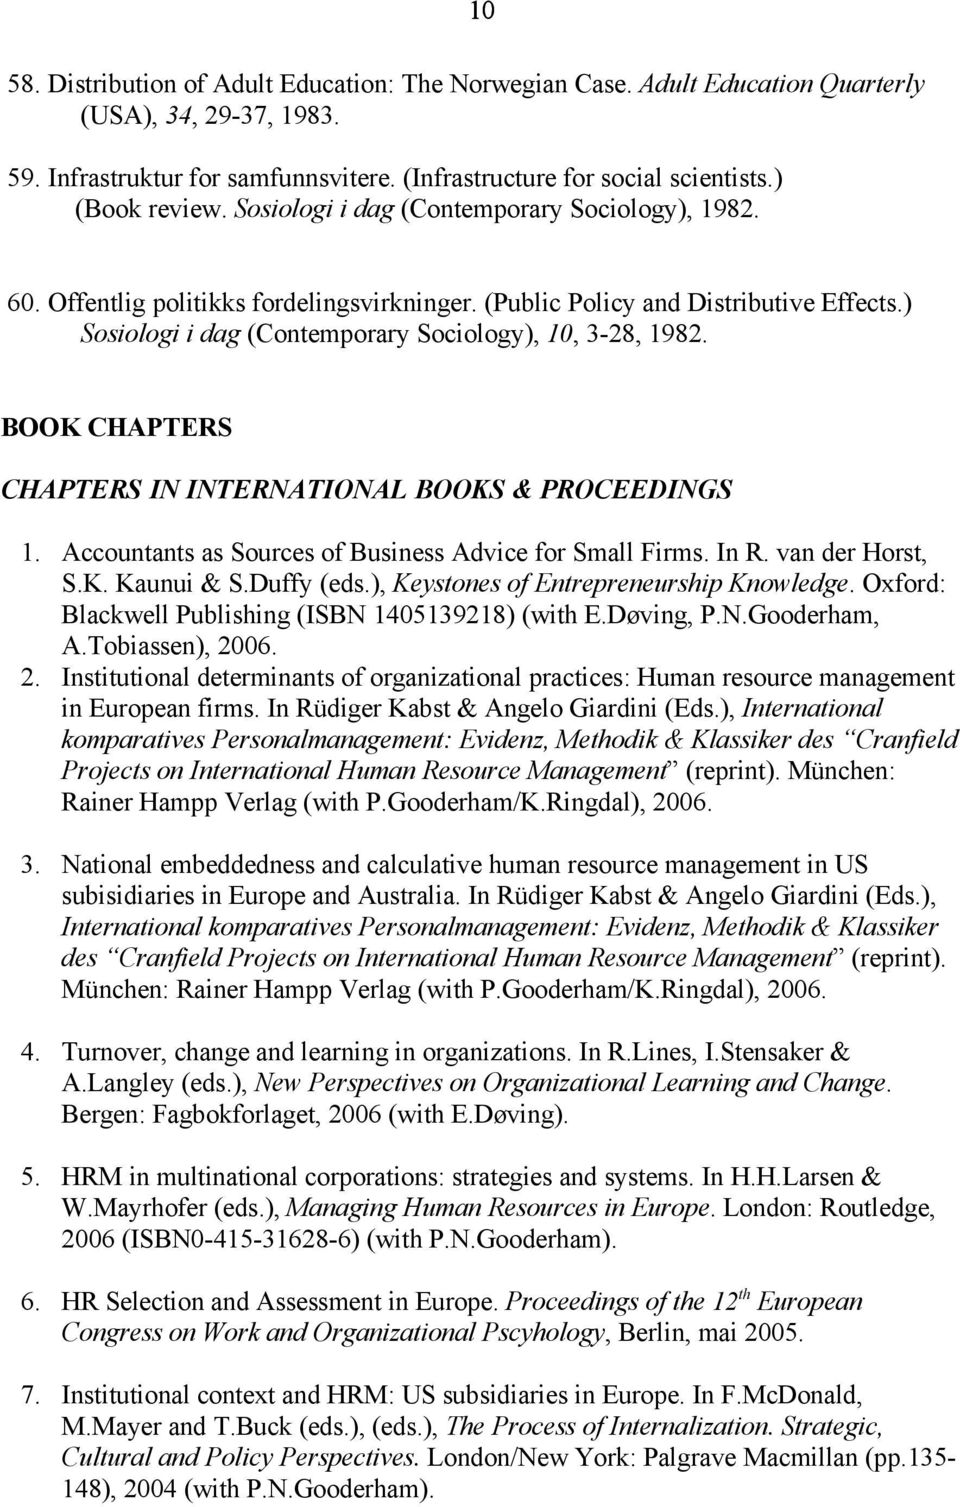 ) Sosiologi i dag (Contemporary Sociology), 10, 3-28, 1982. BOOK CHAPTERS CHAPTERS IN INTERNATIONAL BOOKS & PROCEEDINGS 1. Accountants as Sources of Business Advice for Small Firms. In R.